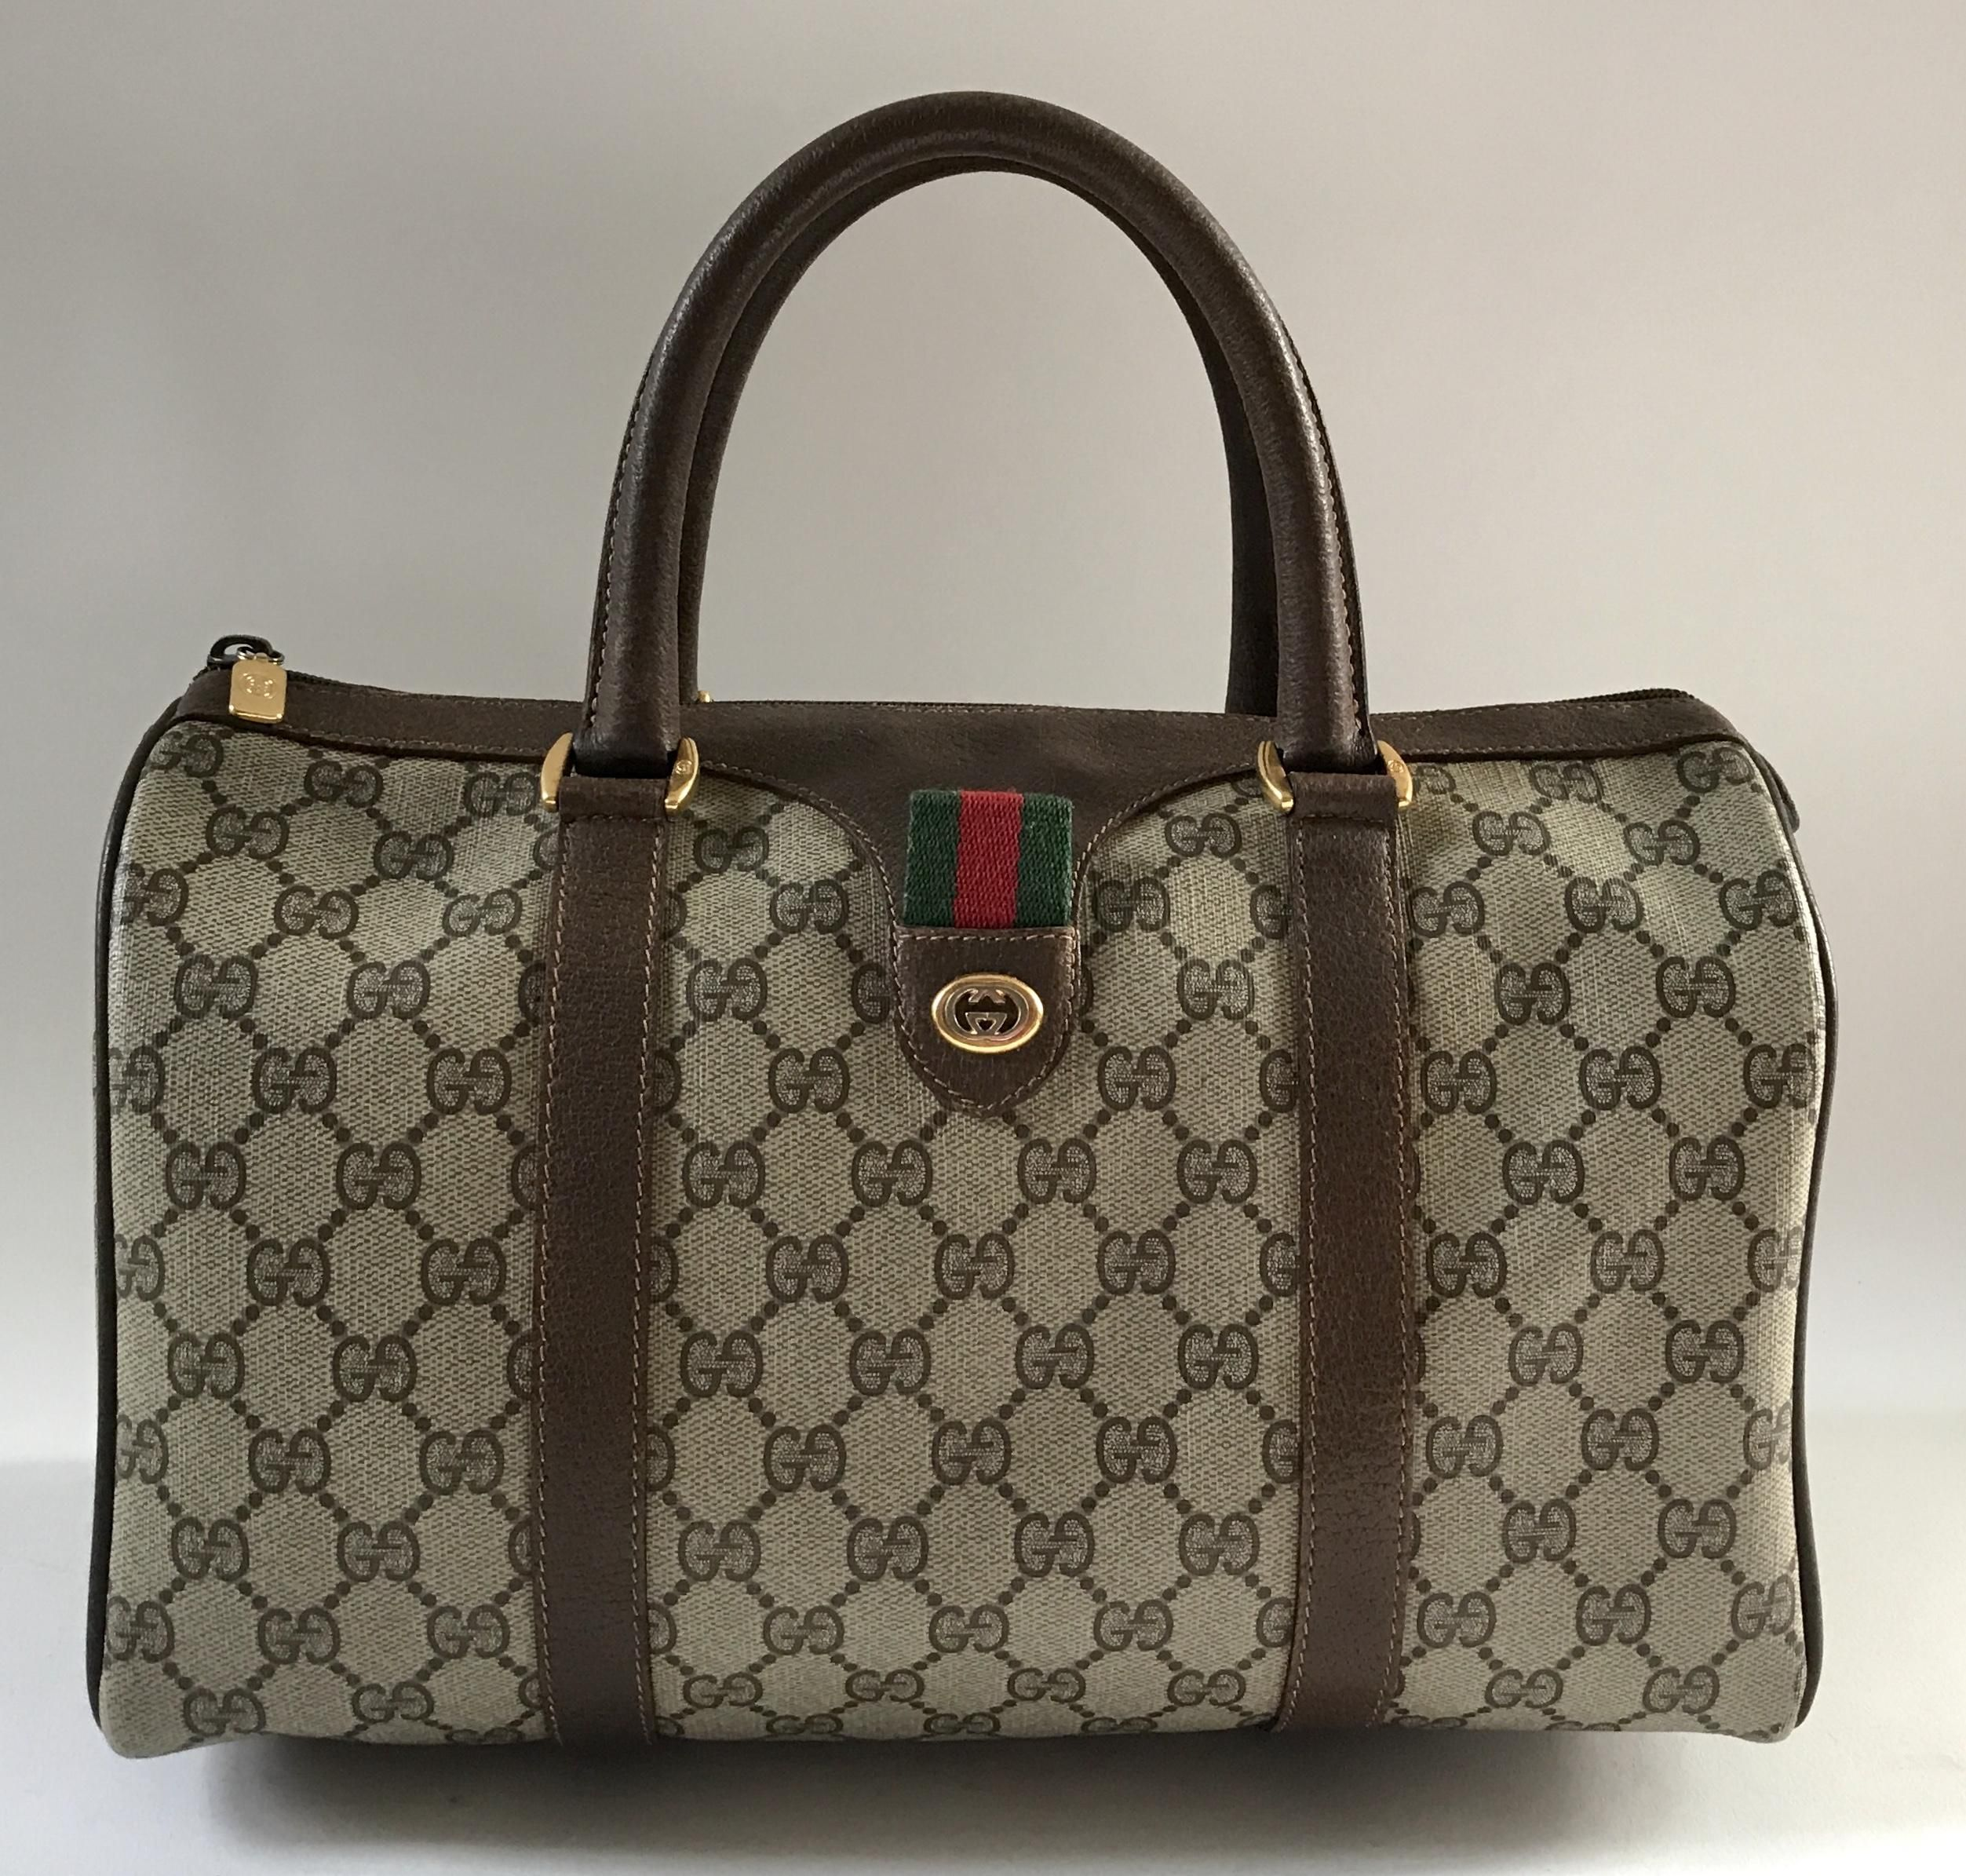 1ae61ec67d7 Gucci Vintage Brown Satchel. Save 80% on the Gucci Vintage Brown Satchel!  This satchel is a top 10 member favorite on Tradesy. See how much you can  save